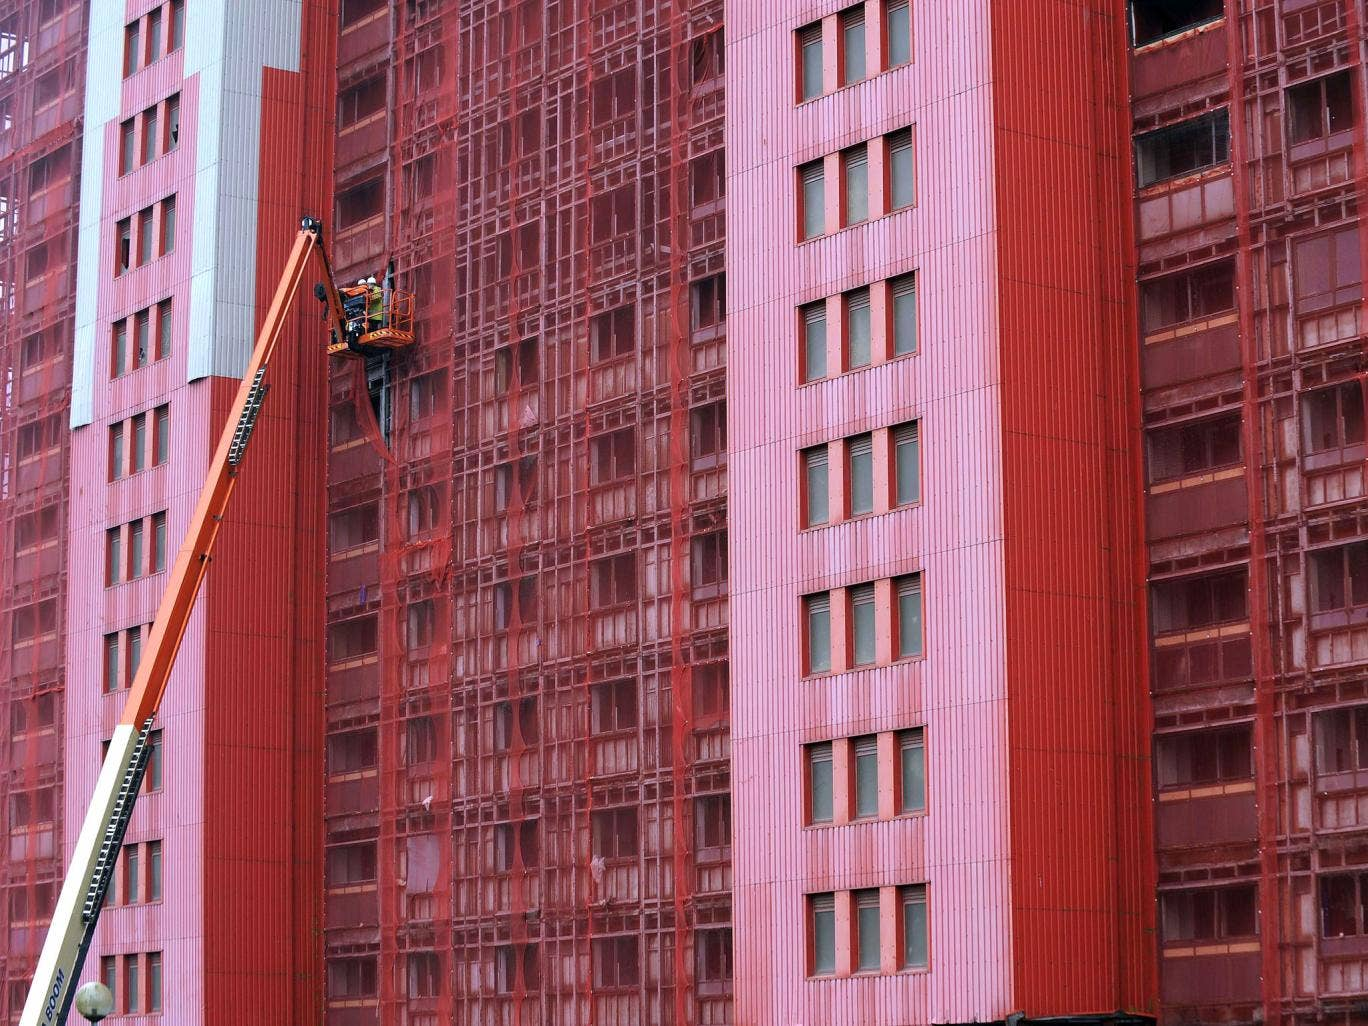 Workers inspect one of the 30-storey Red Road residential blocks in north Glasgow